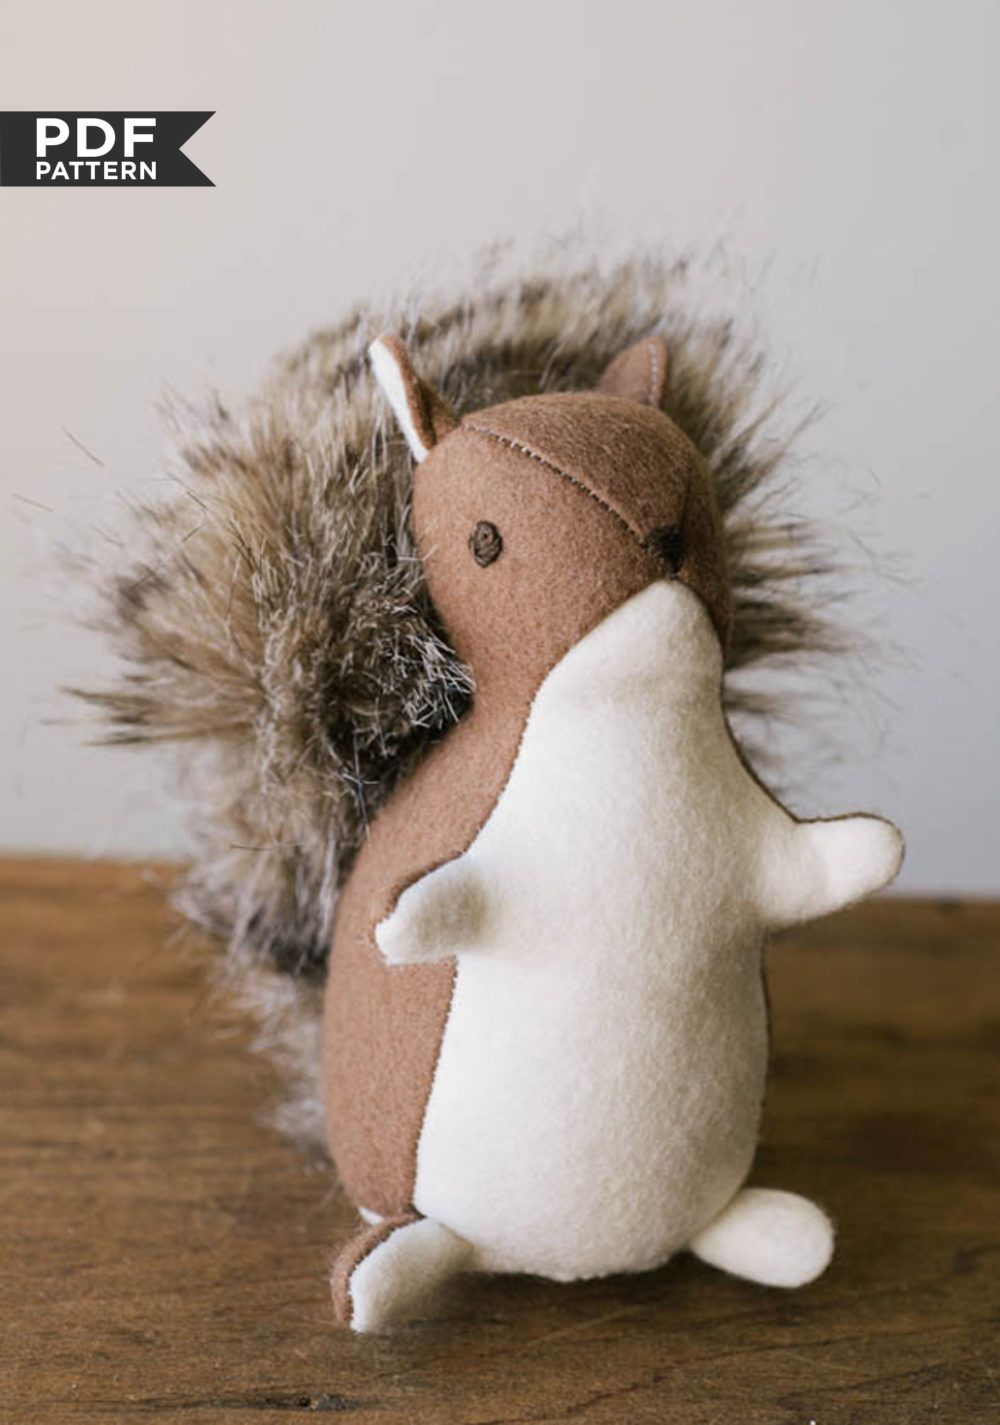 Squirrel Stuffed Toy Sewing Stuffed Animals Diy Sewing Projects Sewing Toys [ 1425 x 1000 Pixel ]